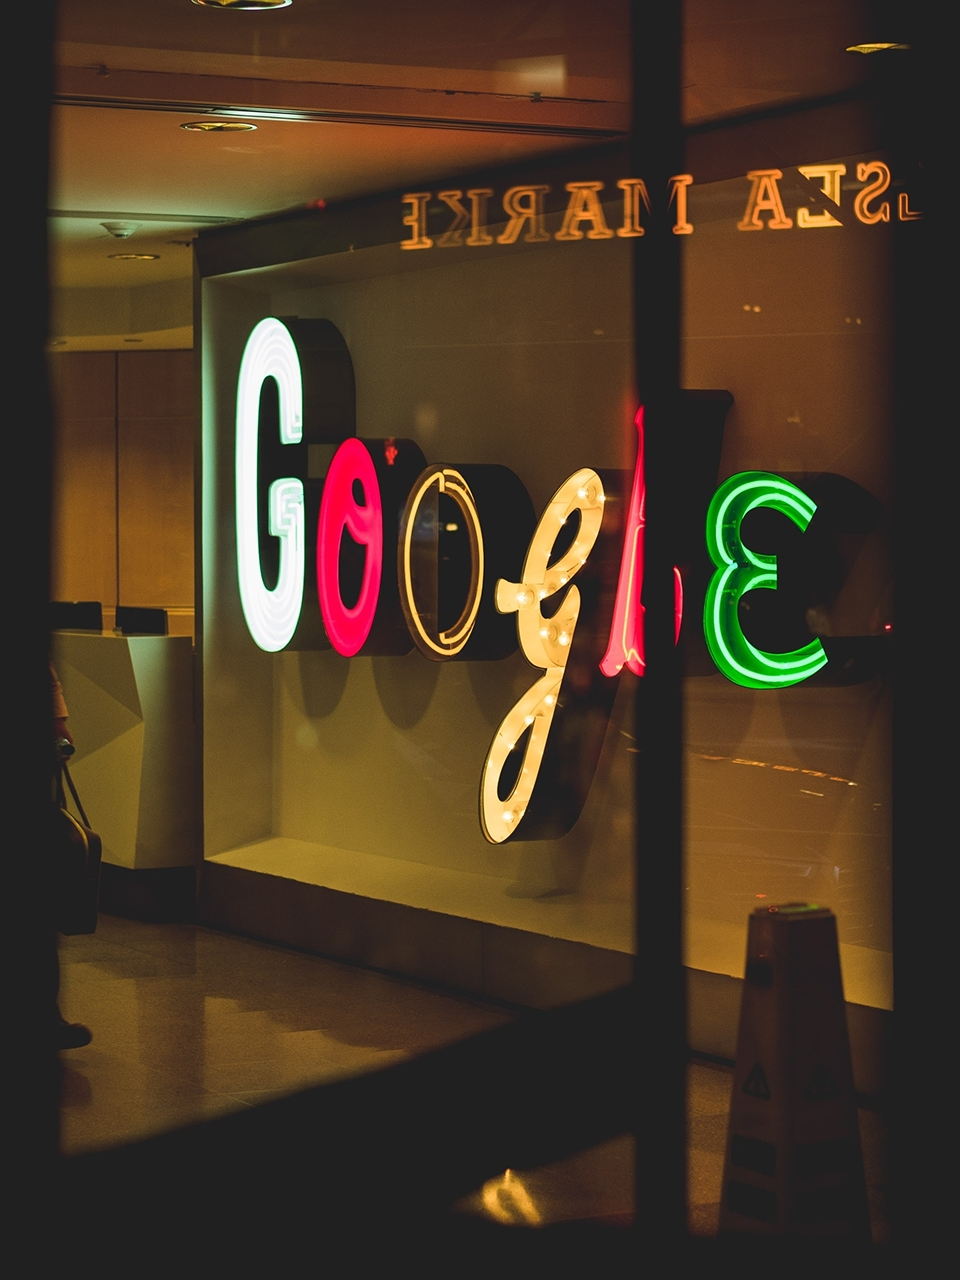 Important policy changes for Google Account storage